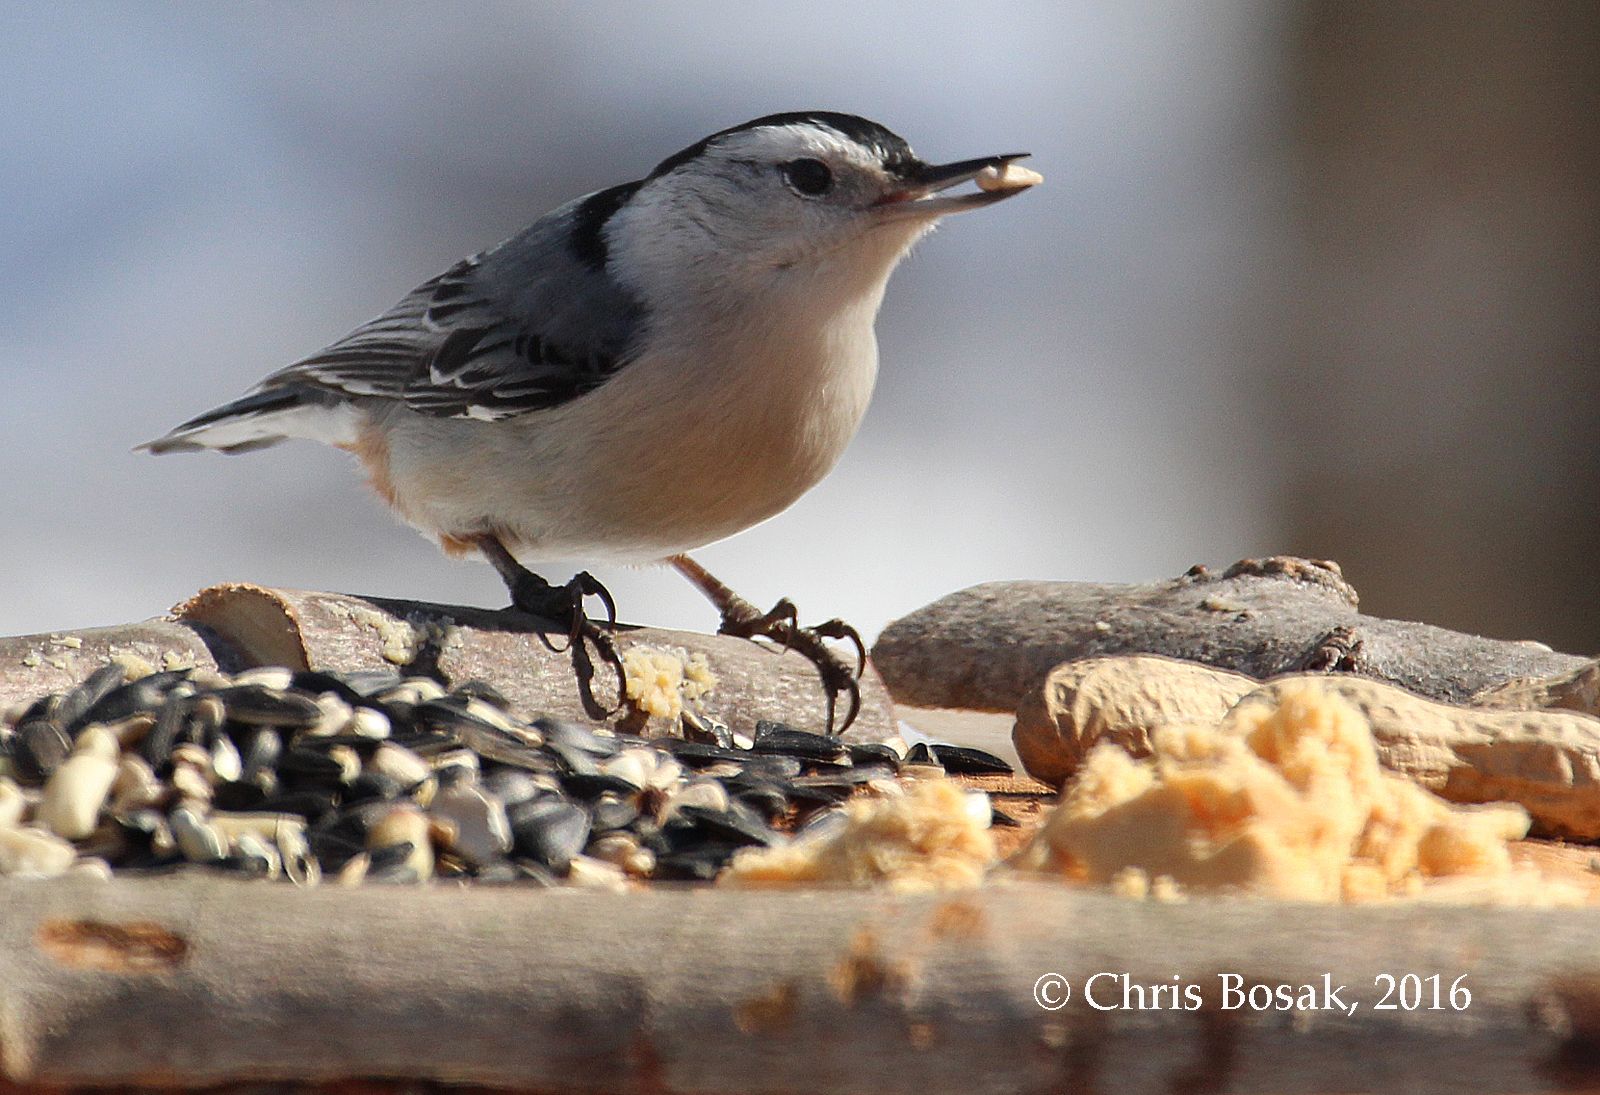 Photo by Chris Bosak A White-breasted Nuthatch checks out a new bird feeder in Danbury, Conn., March 2016.